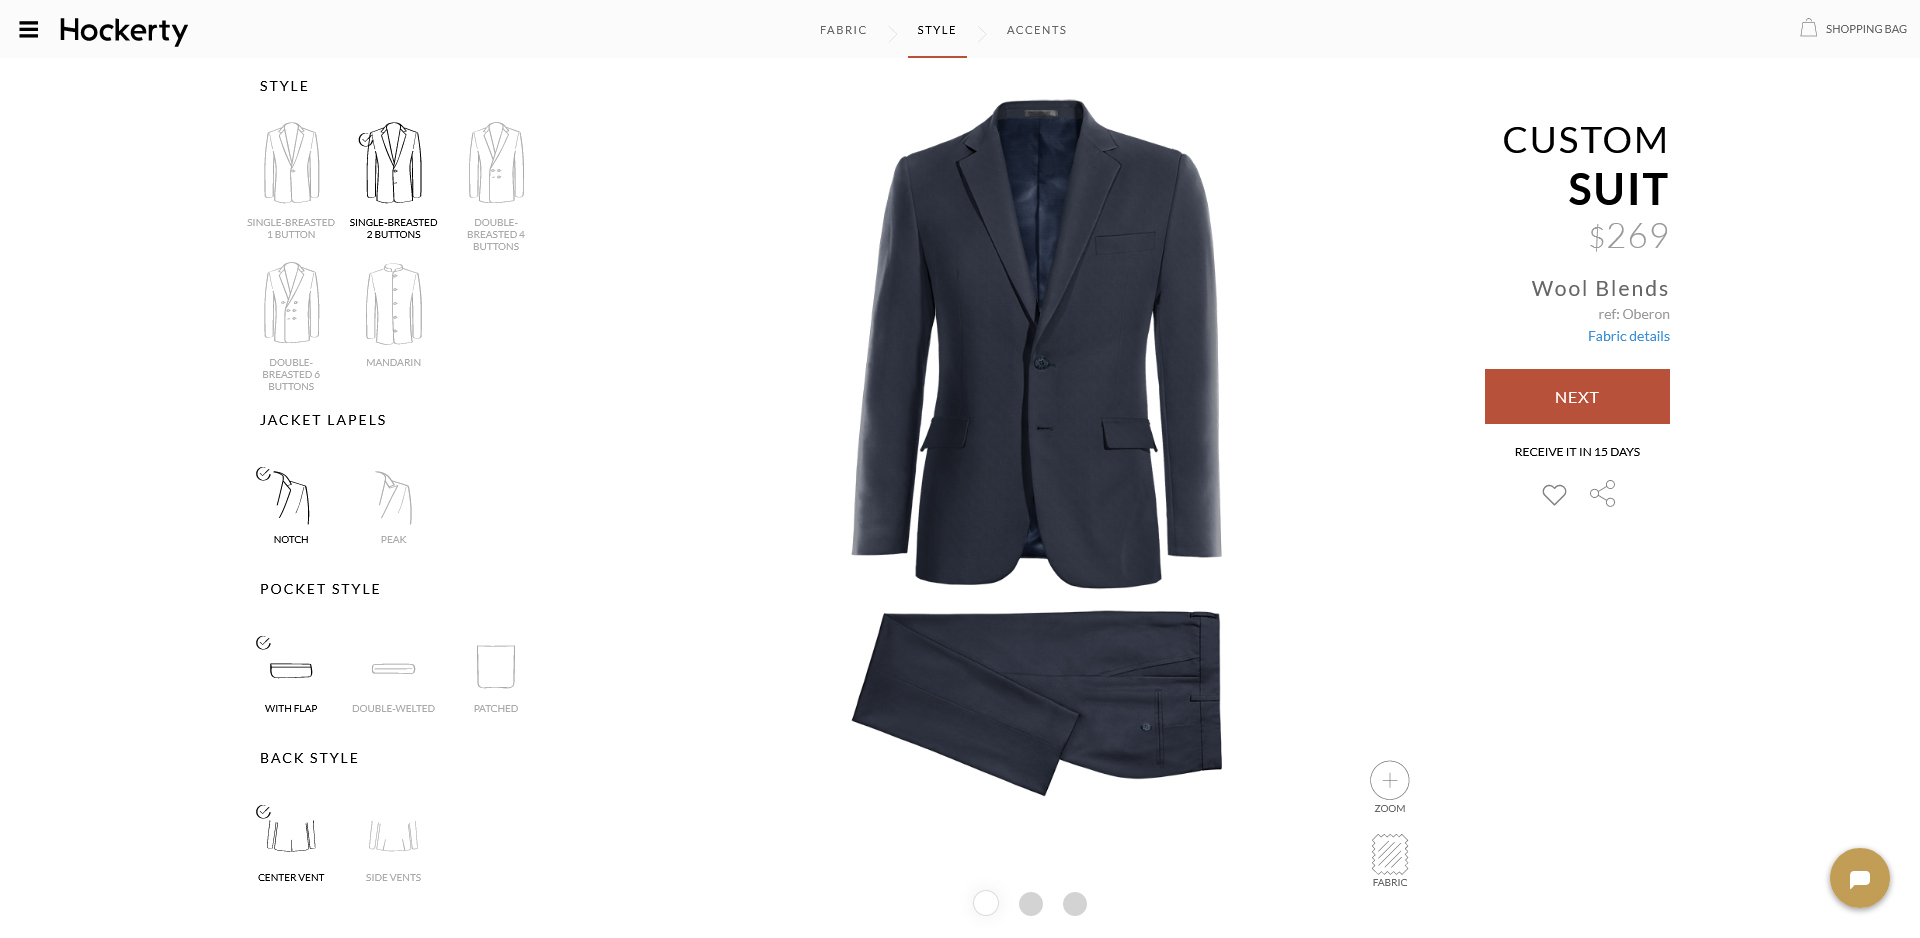 Hockerty made-to-measure suit style & design options